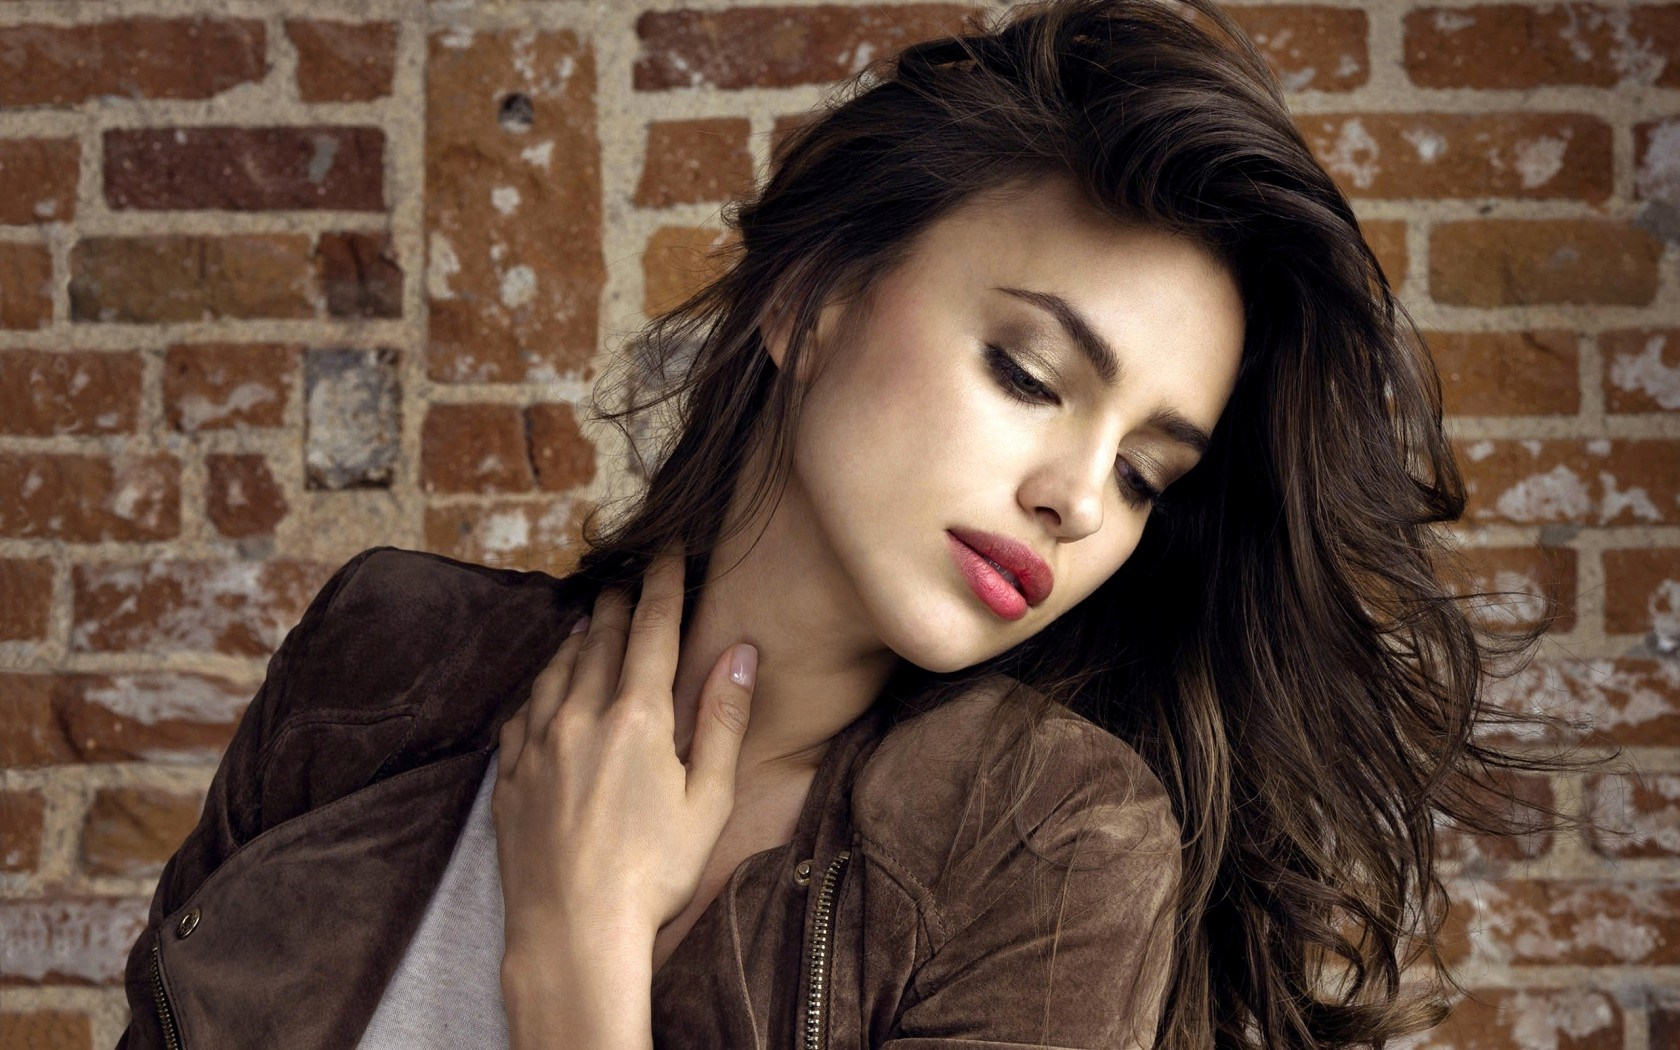 Irina Shayk Sheik Fashion Girl